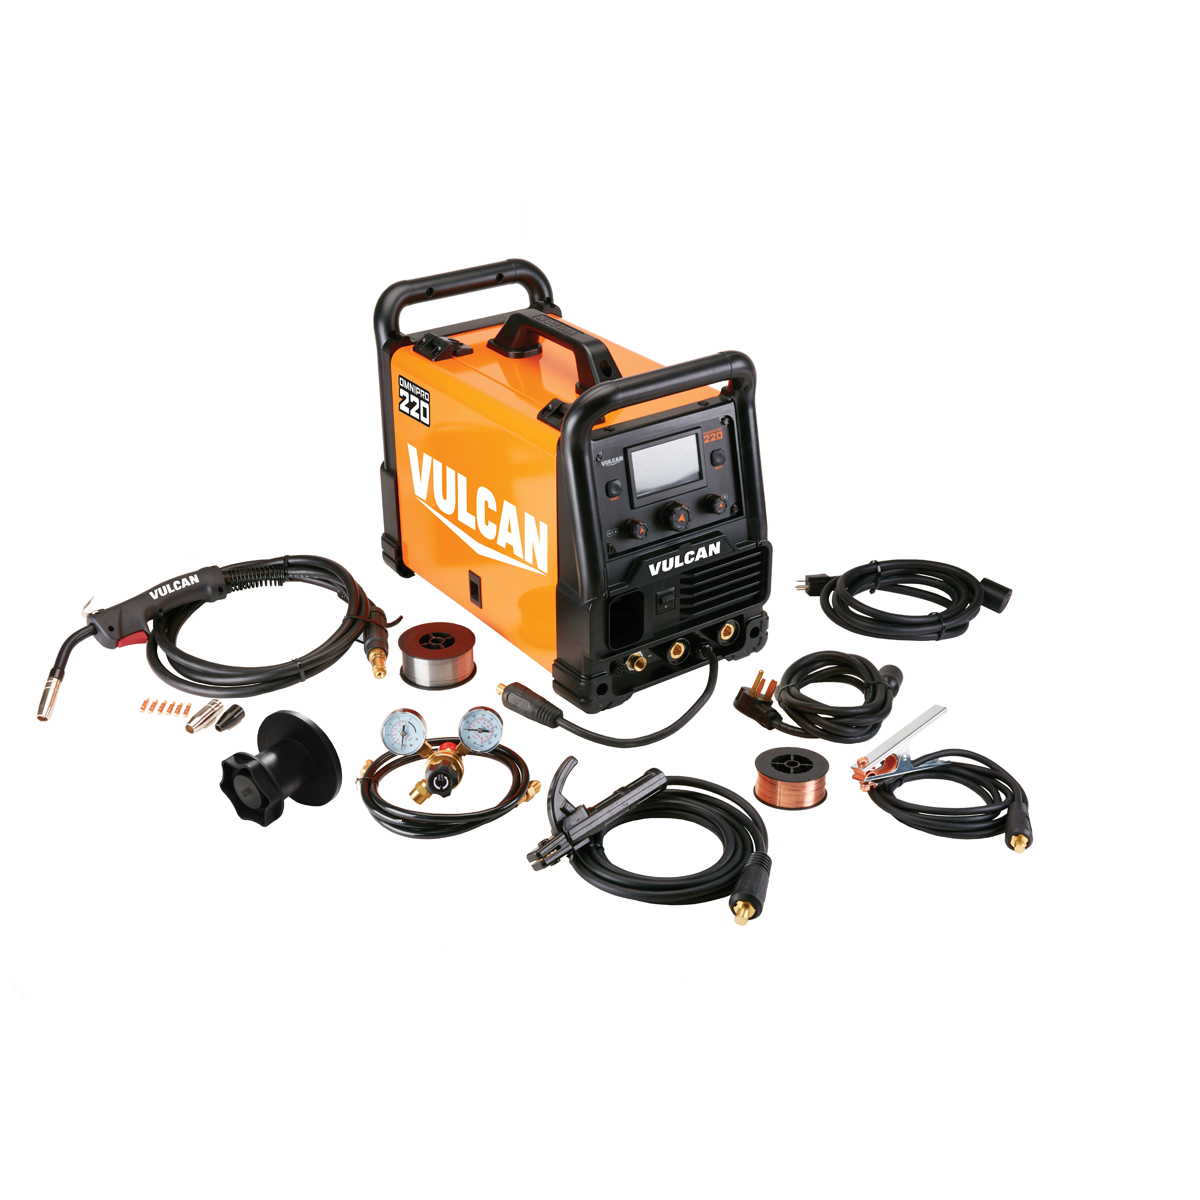 Omnipro 220 Industrial Multiprocess Welder With 120 240 Volt Input Wiring A Outlet